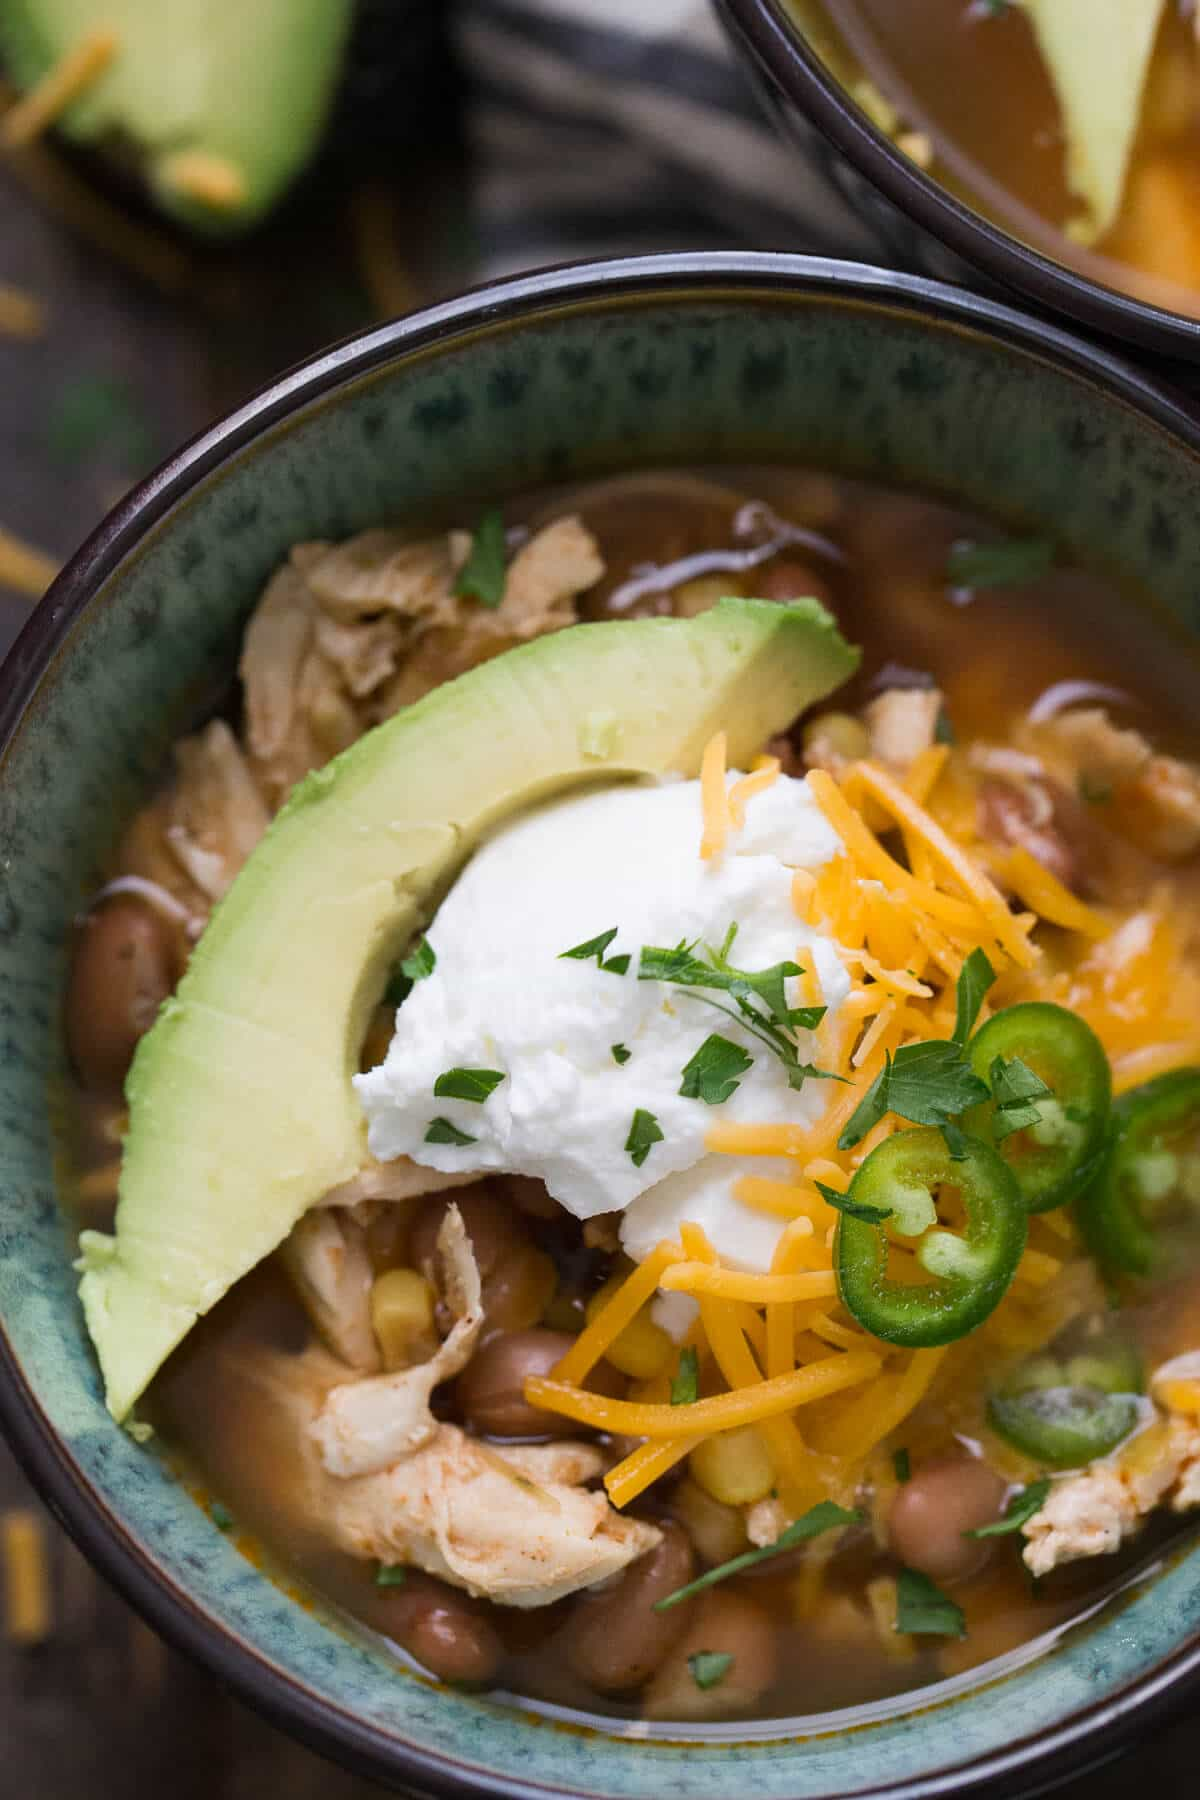 You are going to love this slow cooker chicken chili! It is so easy and so satisfying!